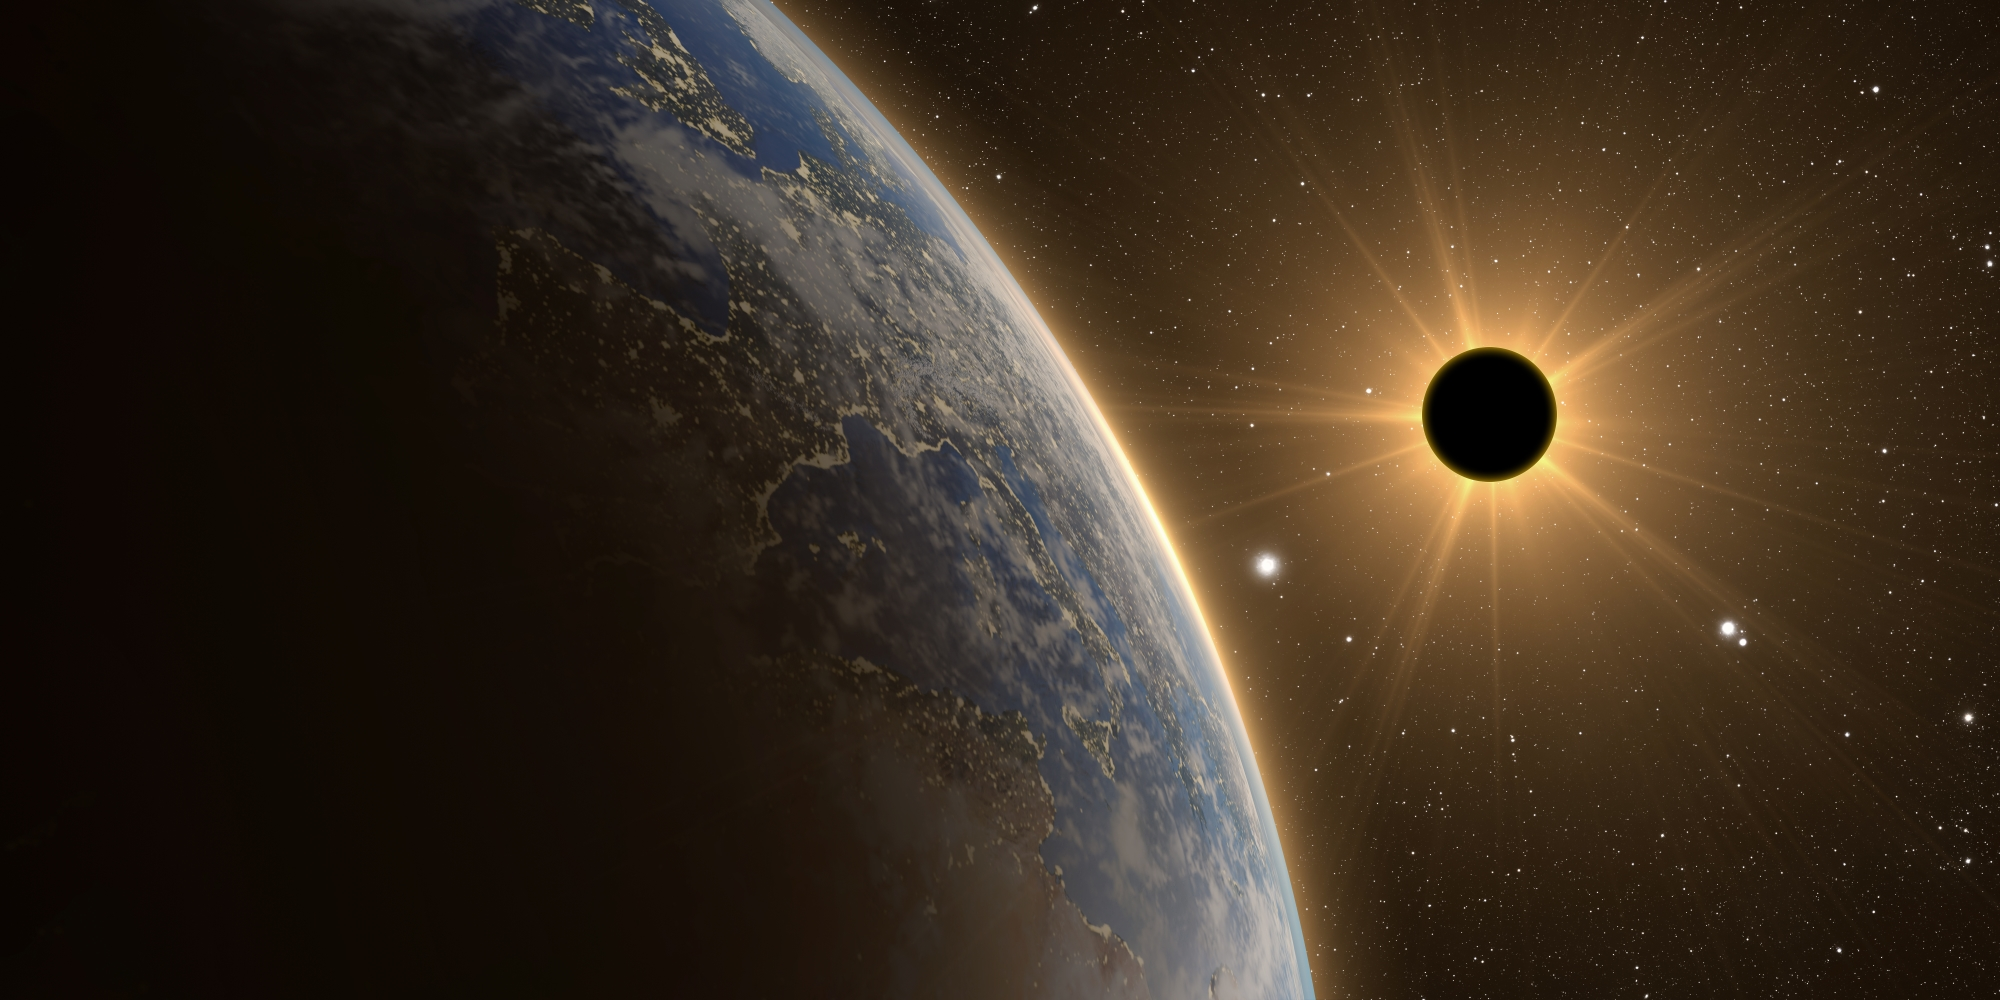 The solar eclipse of 14 December 14 2020